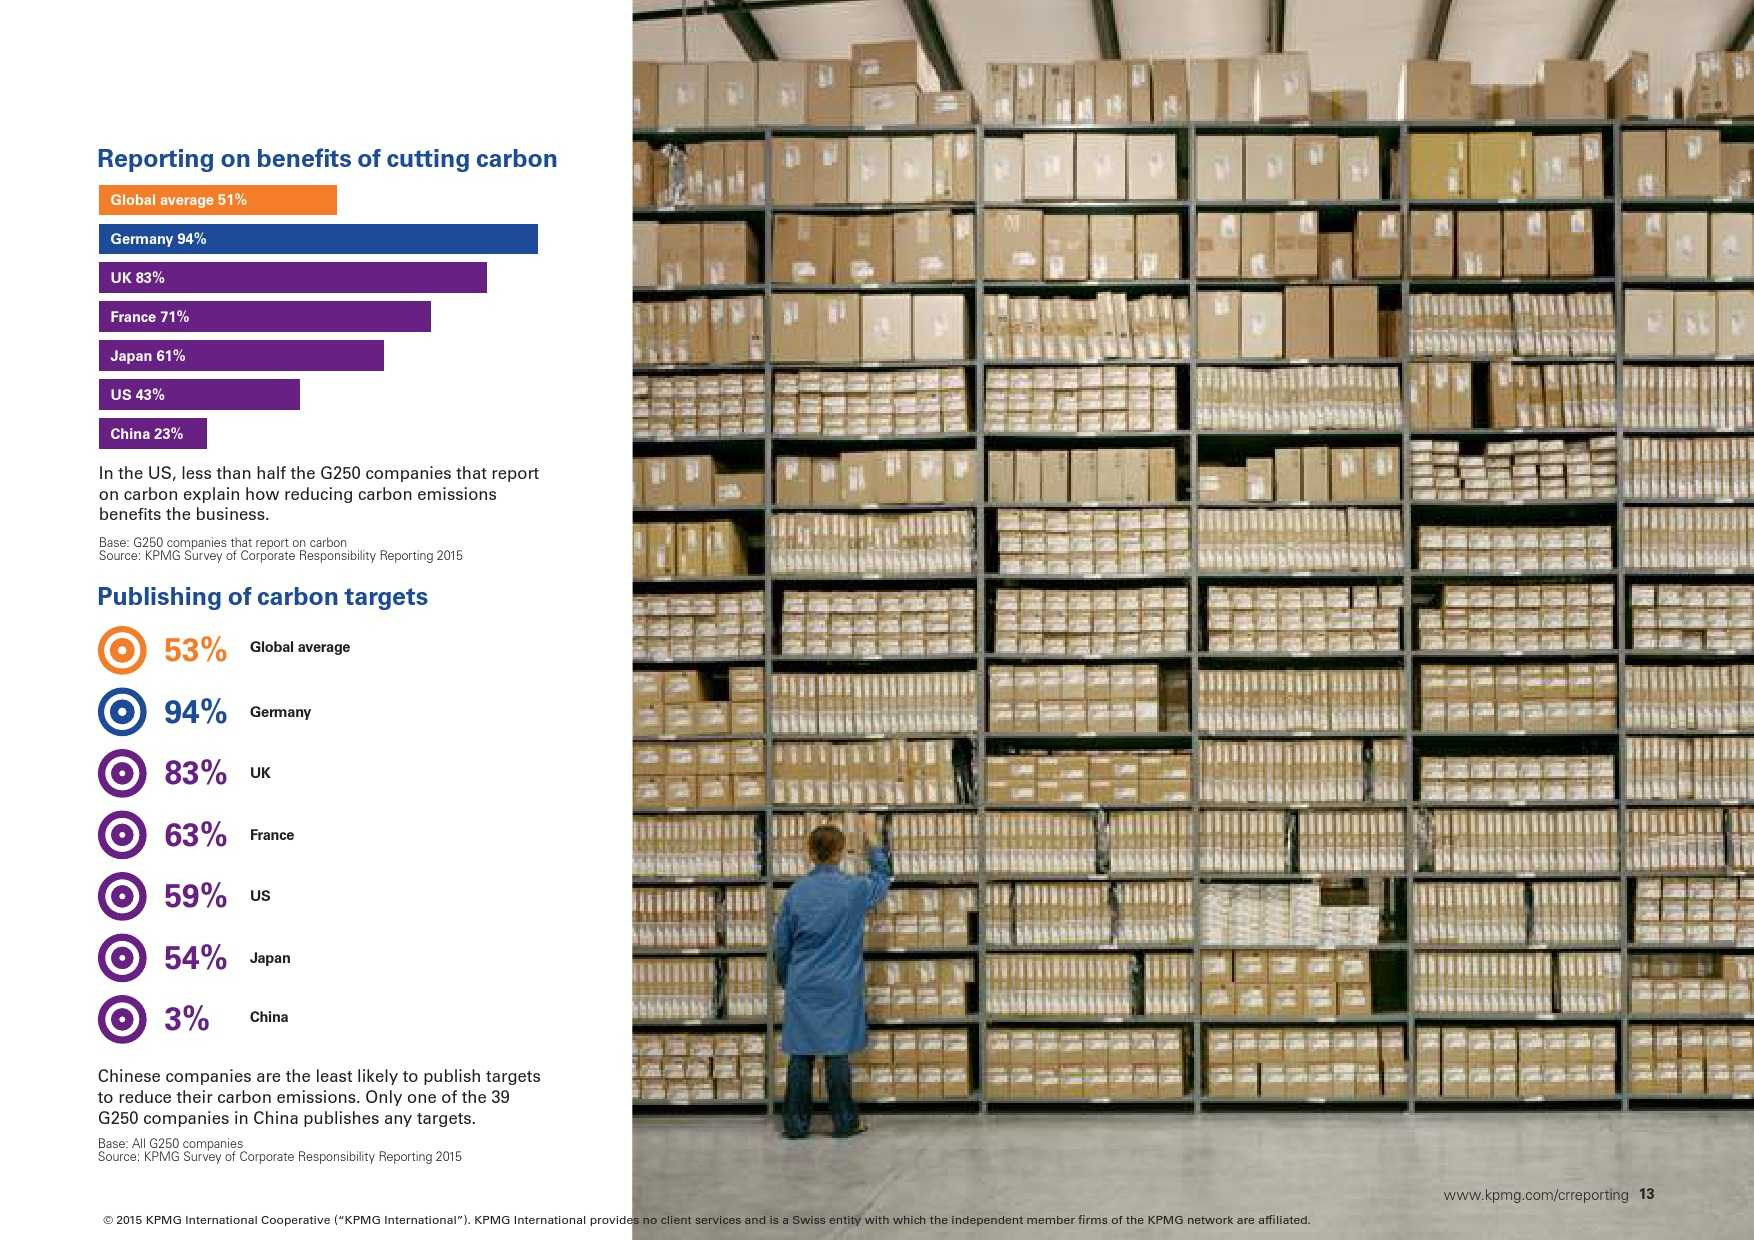 kpmg-international-survey-of-corporate-responsibility-reporting-2015_000013